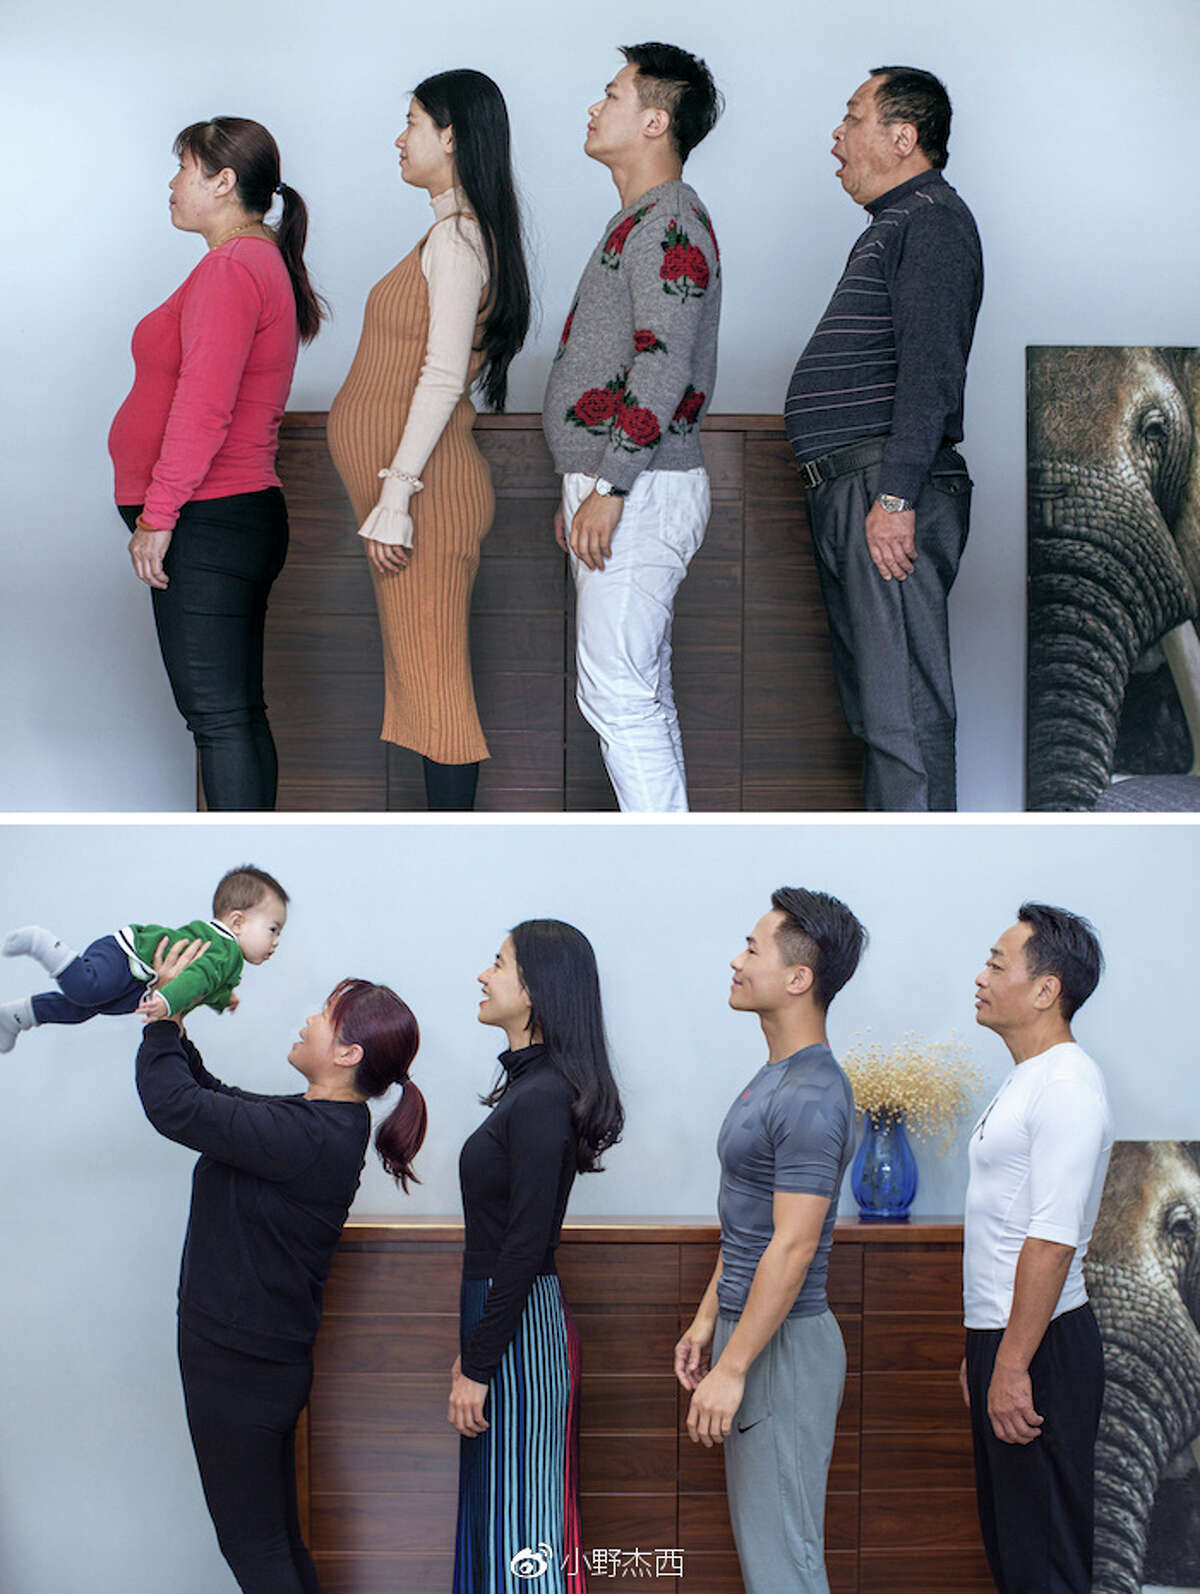 The family that goes to the gym together, gets thin together. Chinese photographer Jesse Ding documented the progress of his family's joint fitness and weight-loss program over six months. Here's how they looked when they started (top) and at the end of the program.